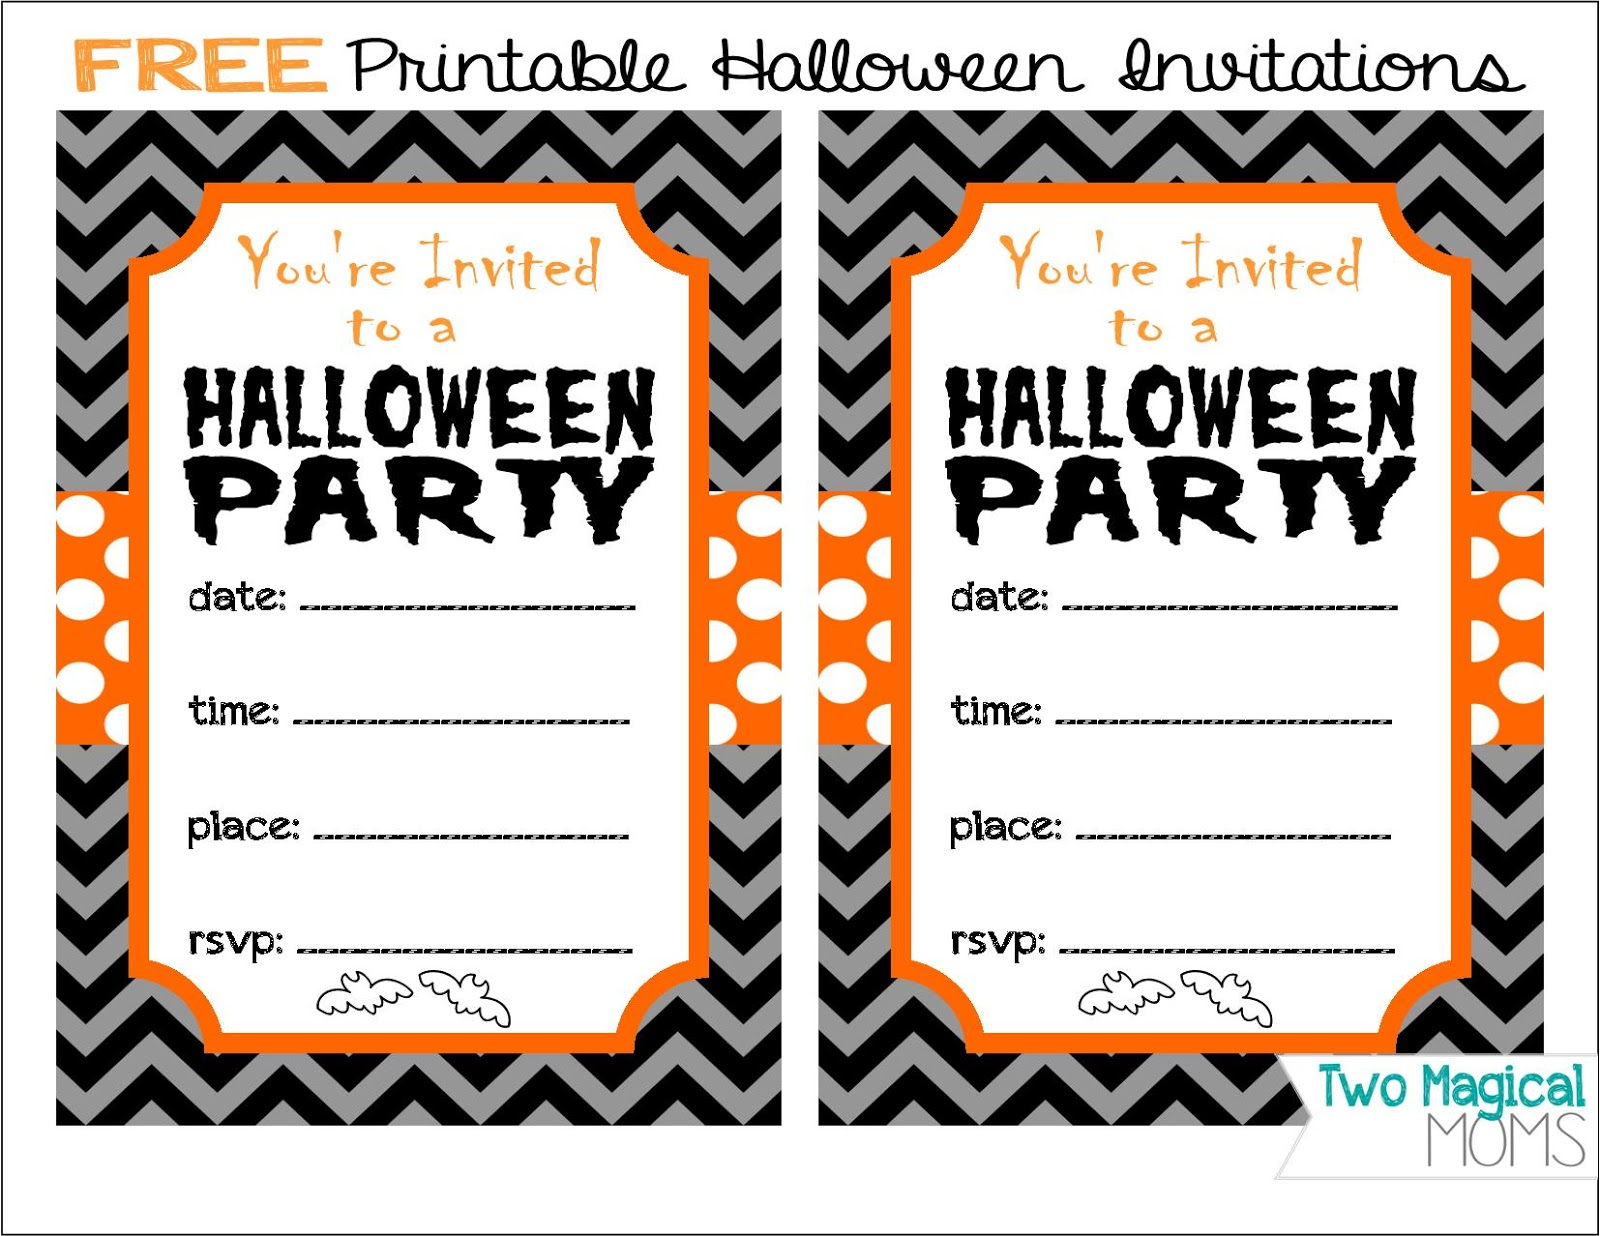 photo about Halloween Invites Printable referred to as Absolutely free Printable Halloween Invites For Grown ups